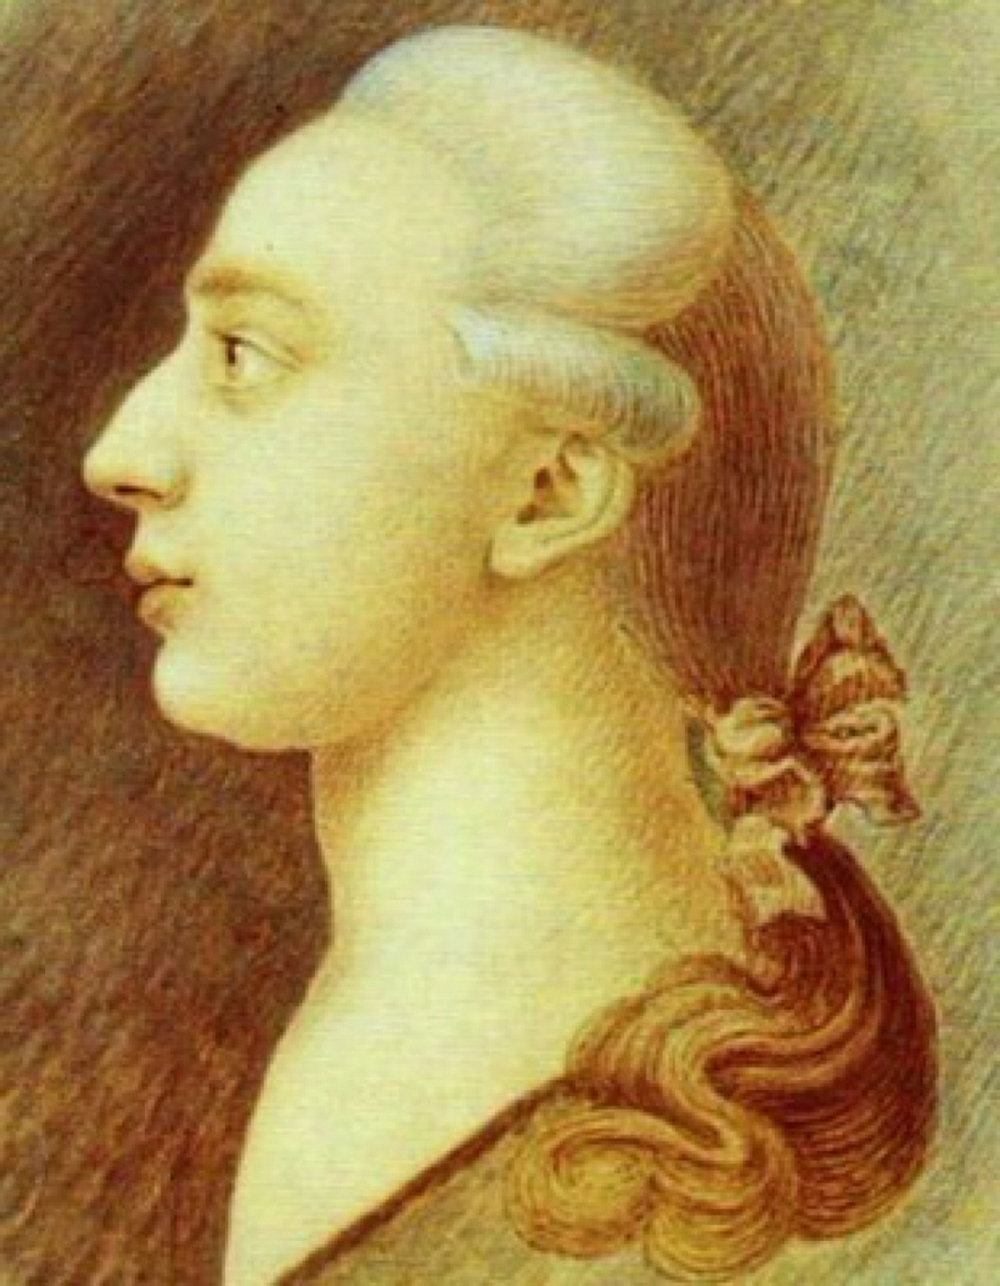 Drawing of Giacomo Casanova by his brother Francesco